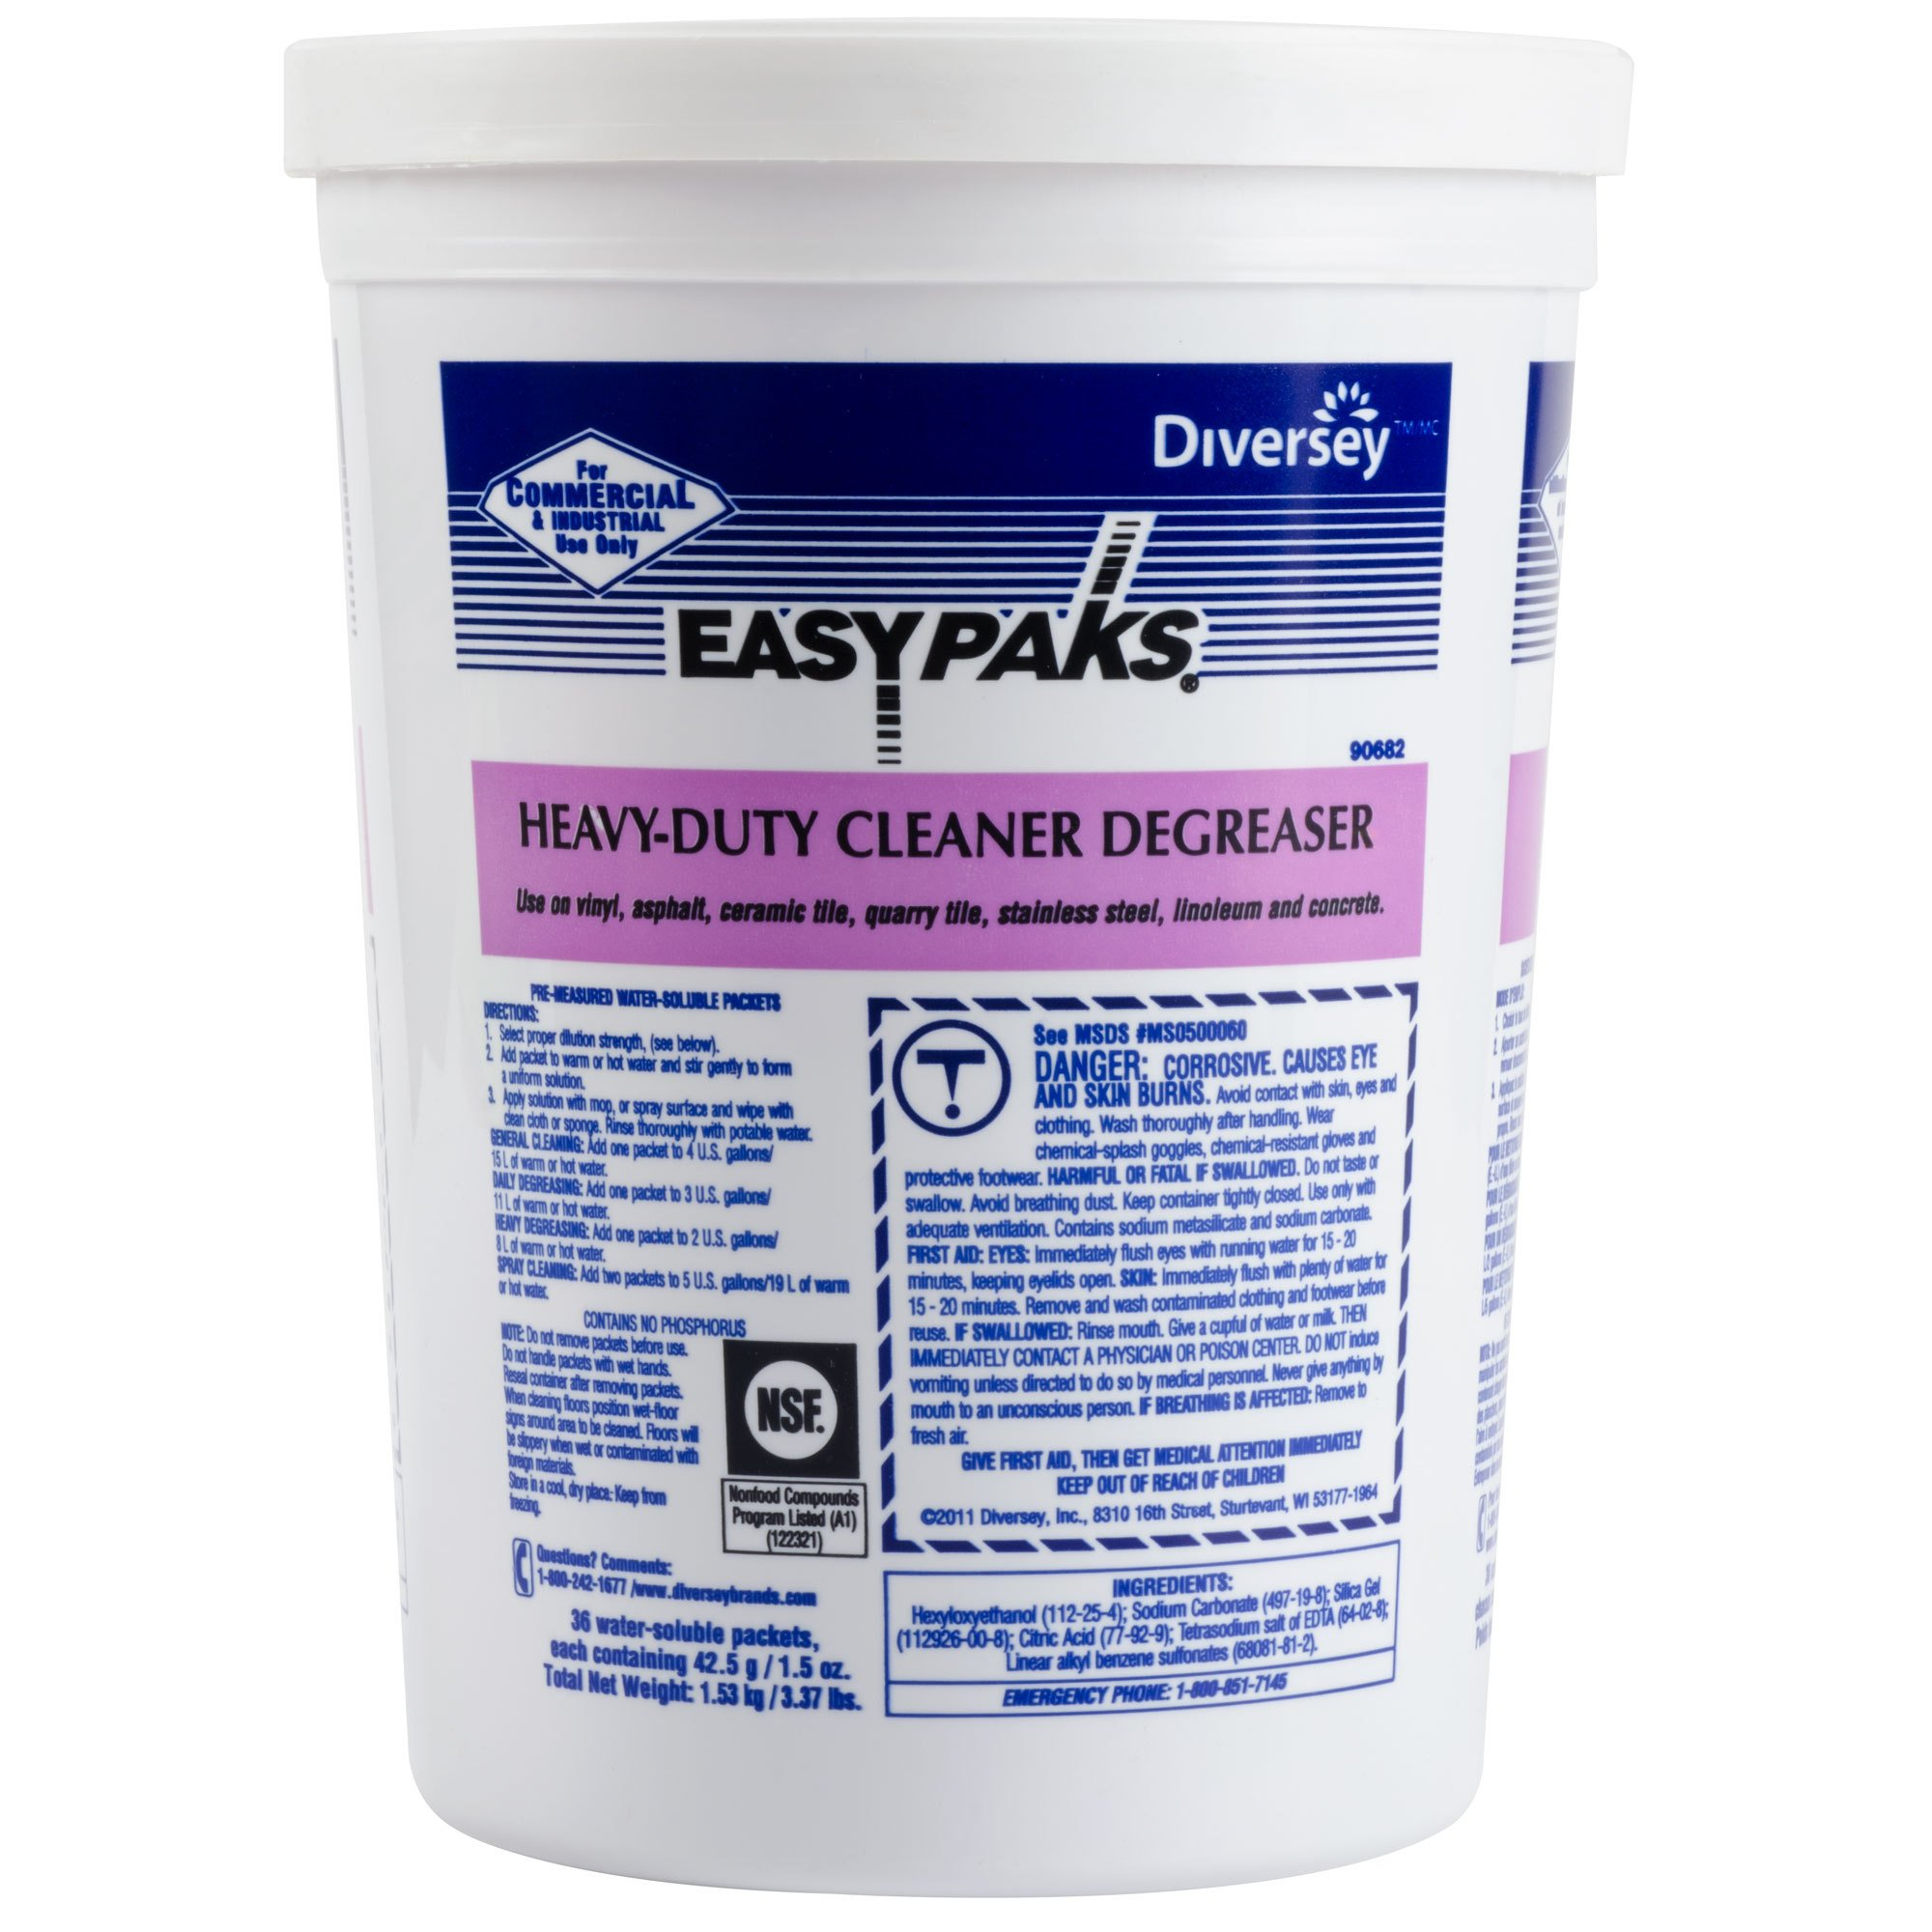 Easy Paks Heavy Duty Cleaner / Degreaser Packet (1.5-Ounce, 72 per Case)